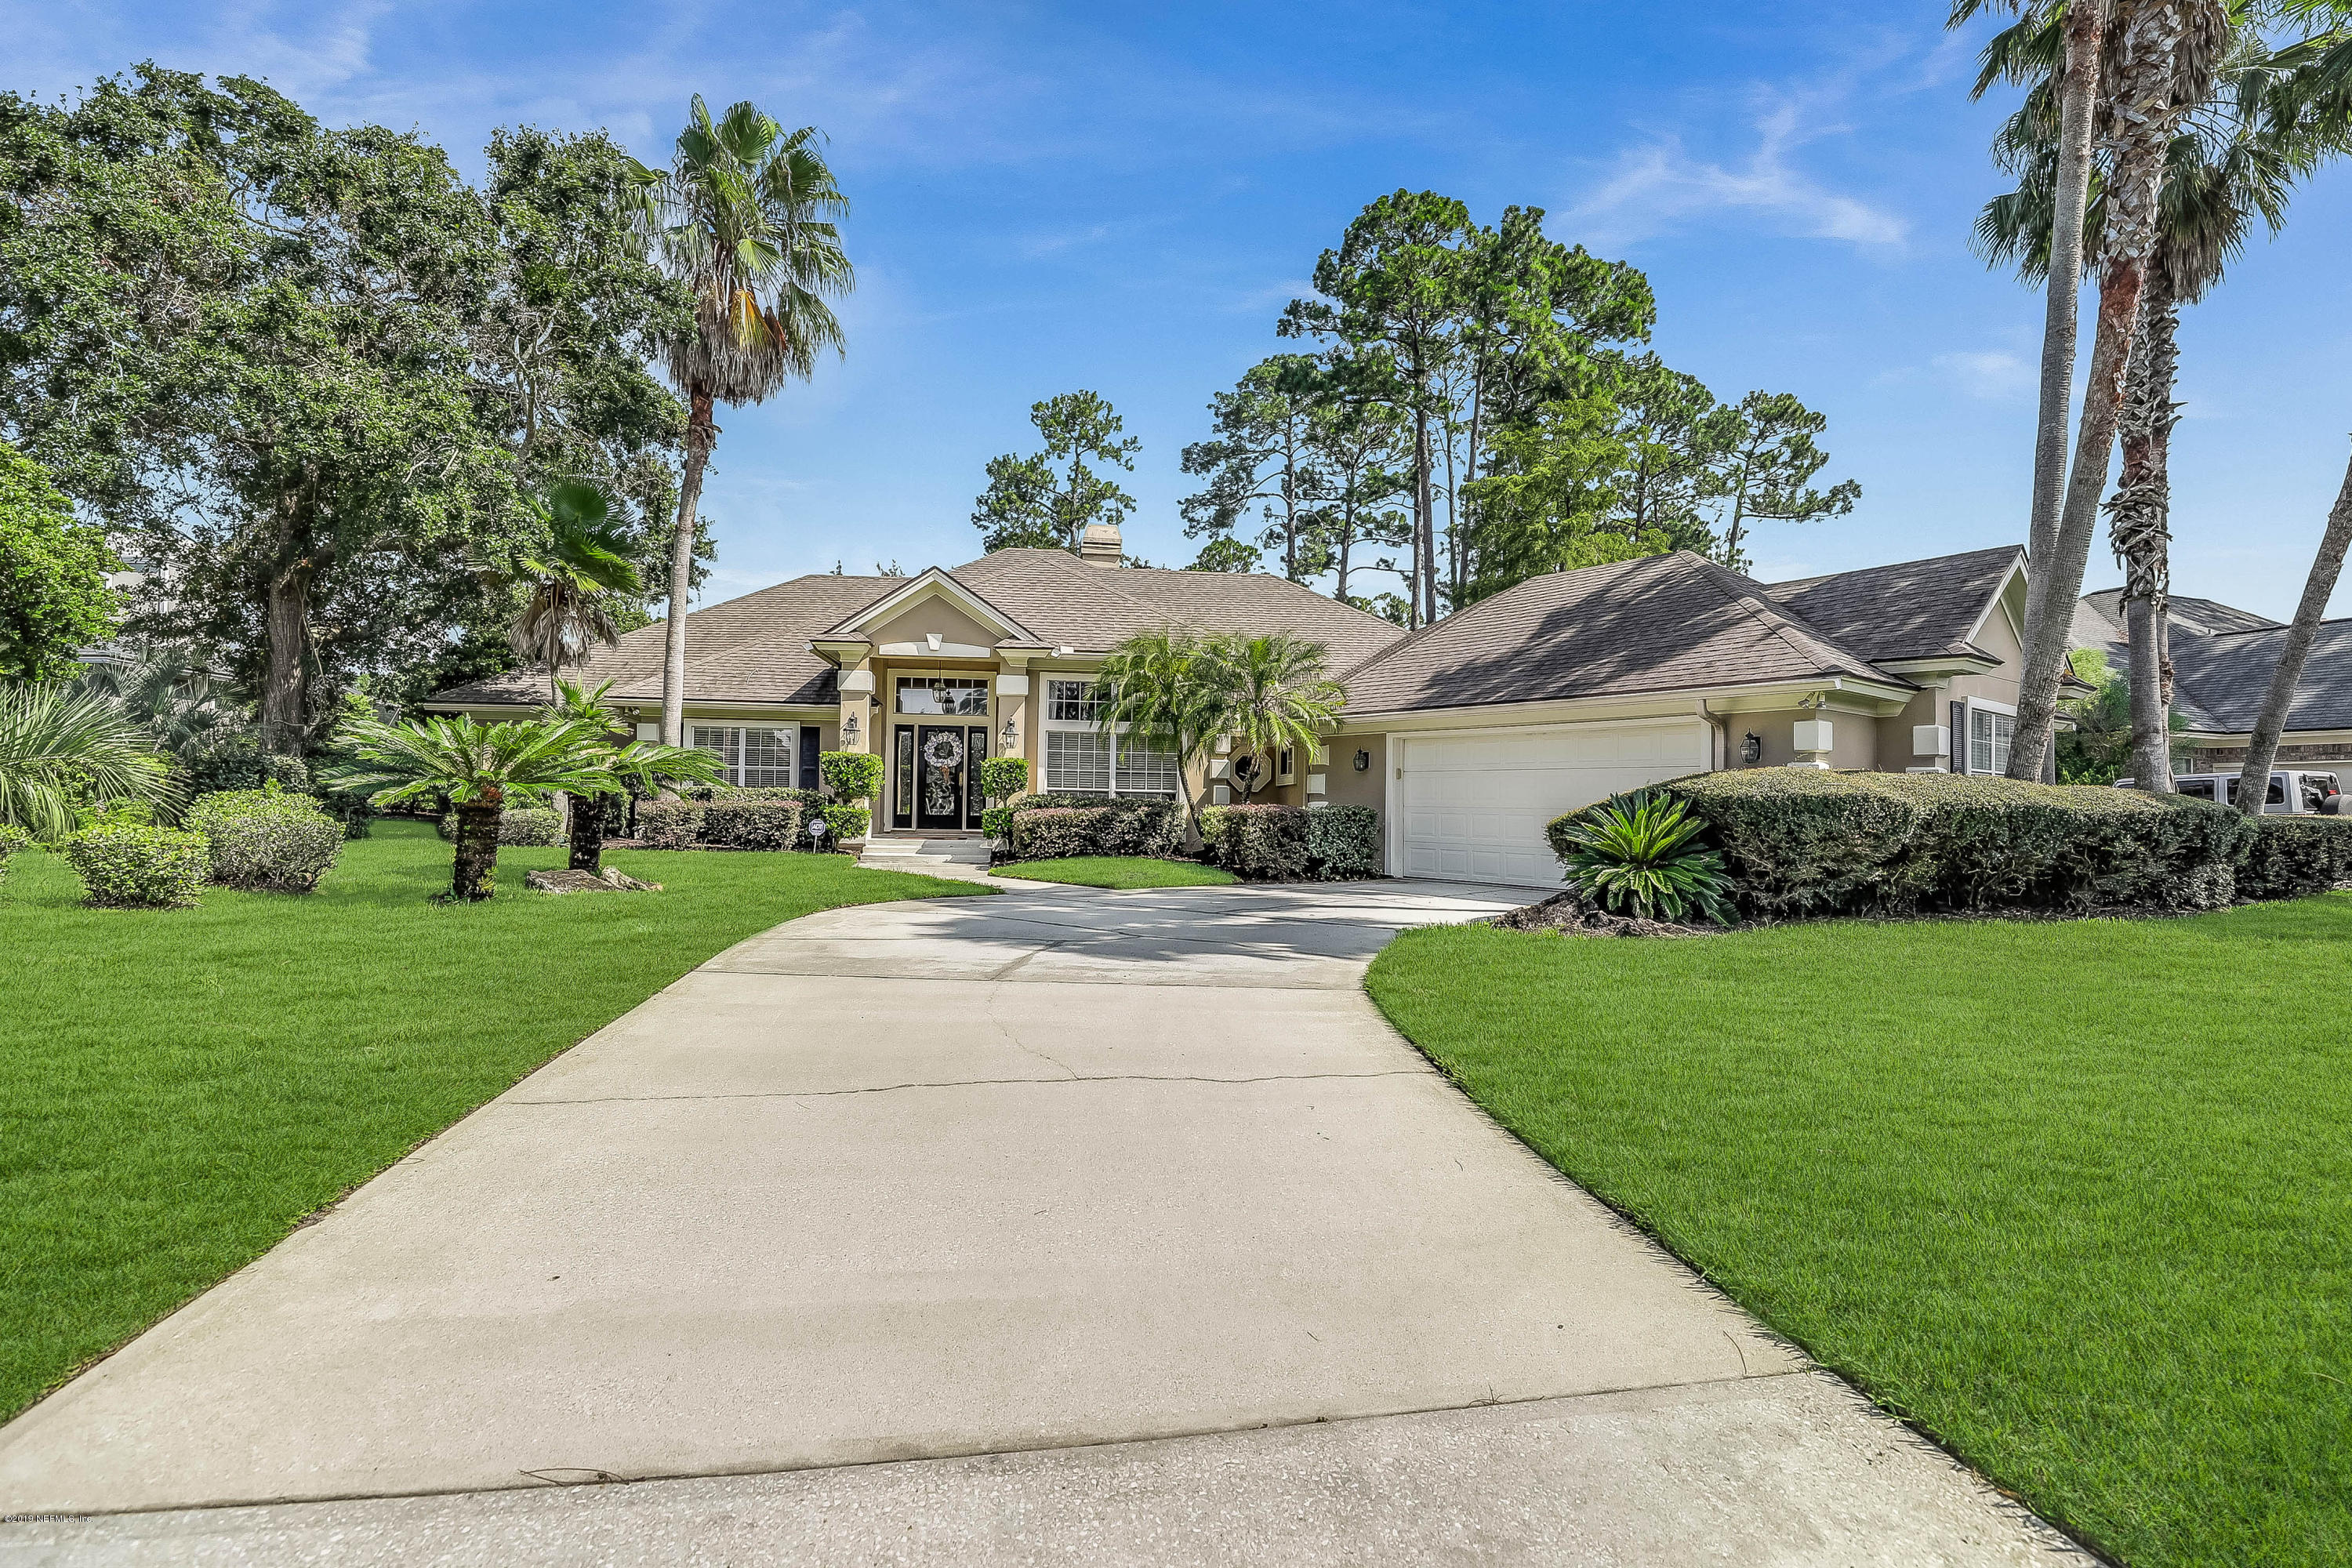 13145 CRICKET COVE, JACKSONVILLE, FLORIDA 32224, 4 Bedrooms Bedrooms, ,3 BathroomsBathrooms,Residential - single family,For sale,CRICKET COVE,1011409